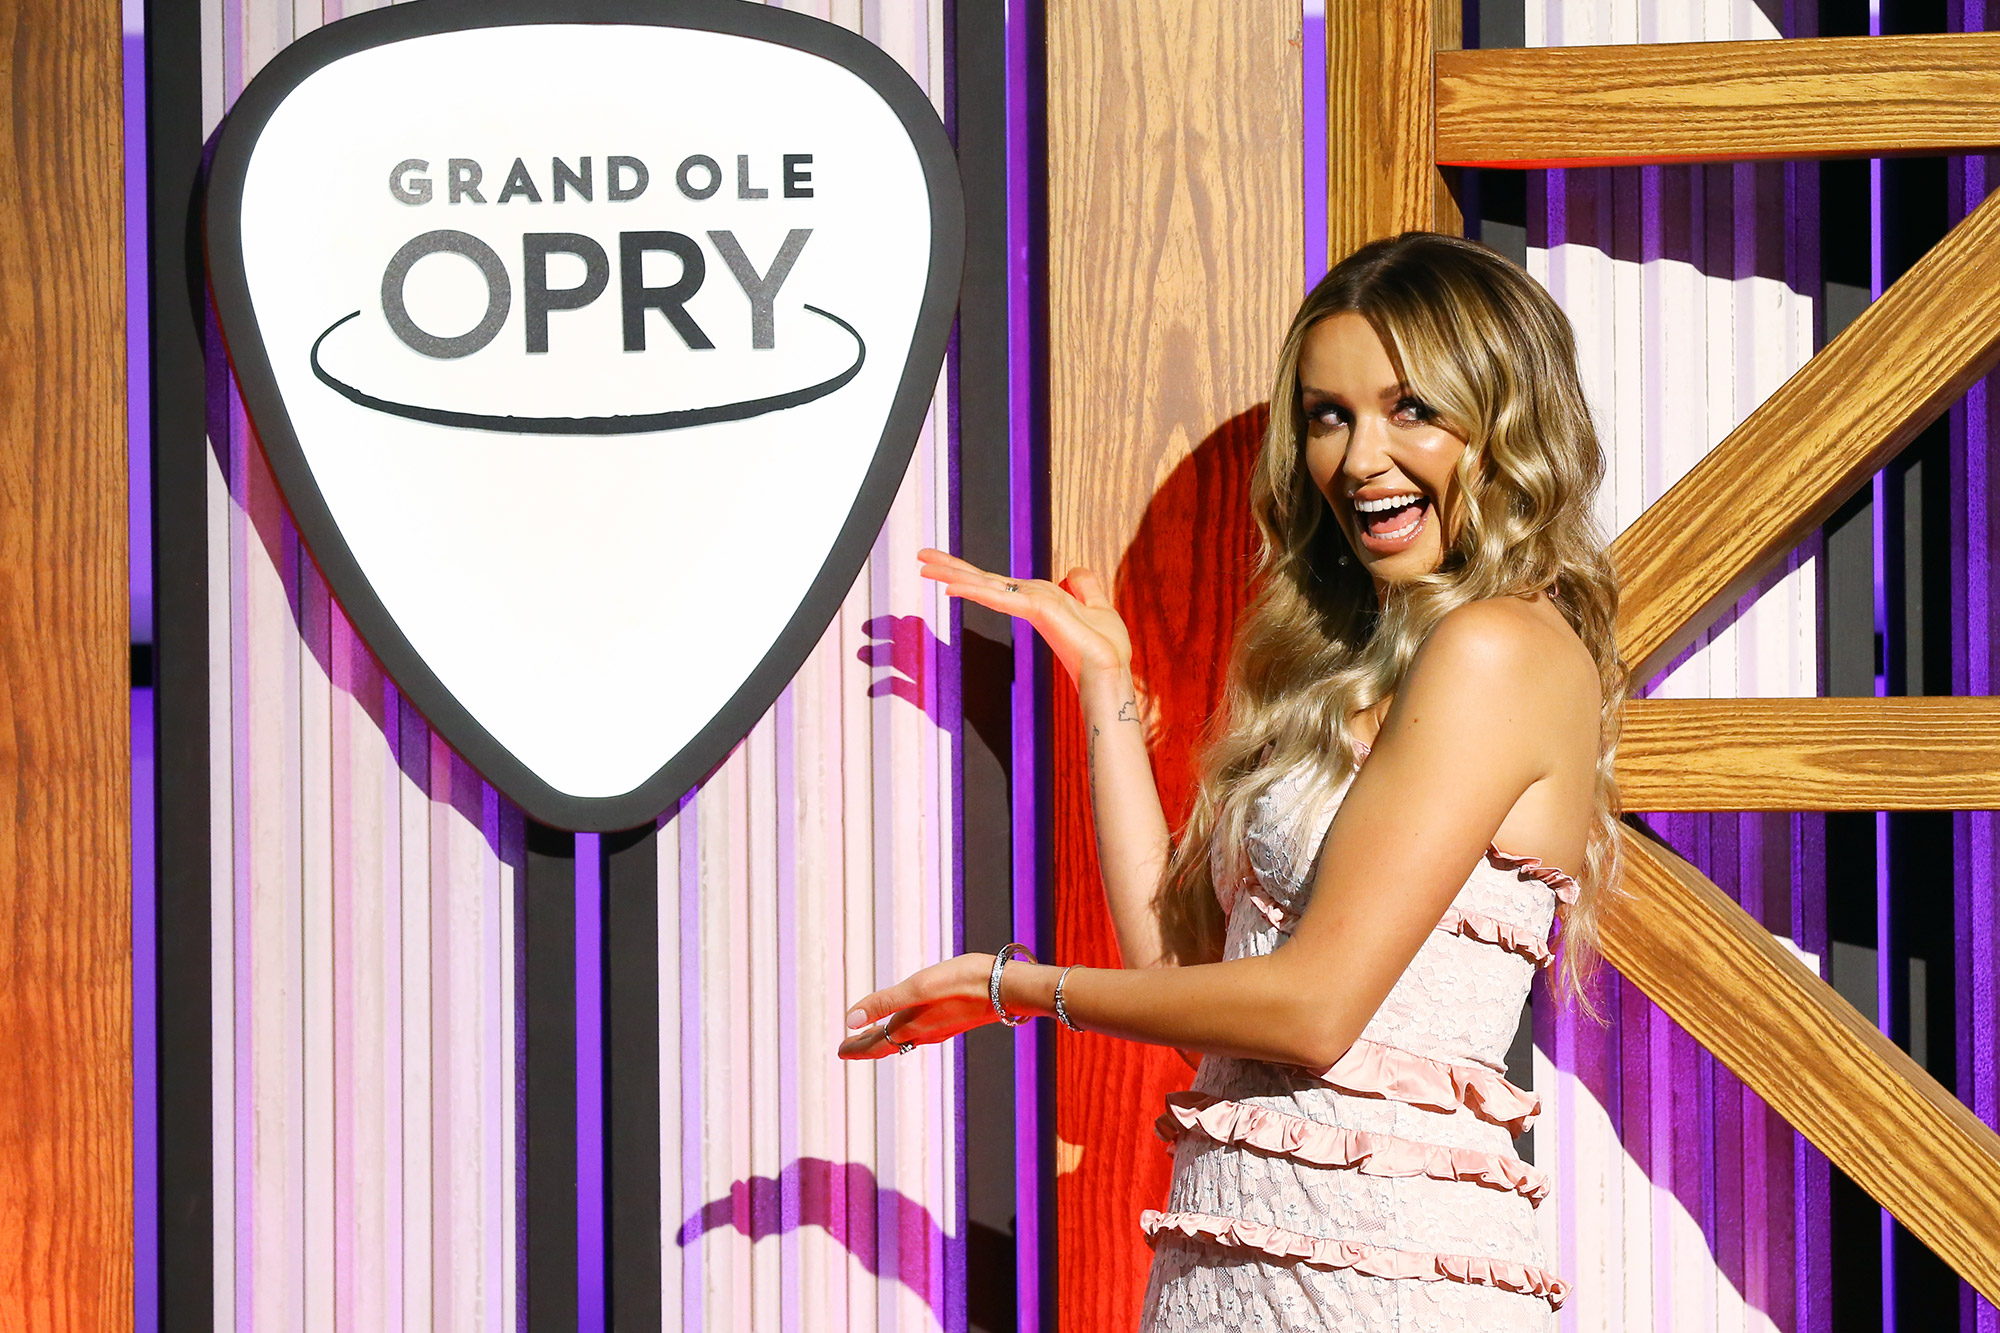 Singer-songwriter Carly Pearce speaks during a press conference before her Induction to the Grand Ole Opry at Grand Ole Opry House on August 03, 2021 in Nashville, Tennessee